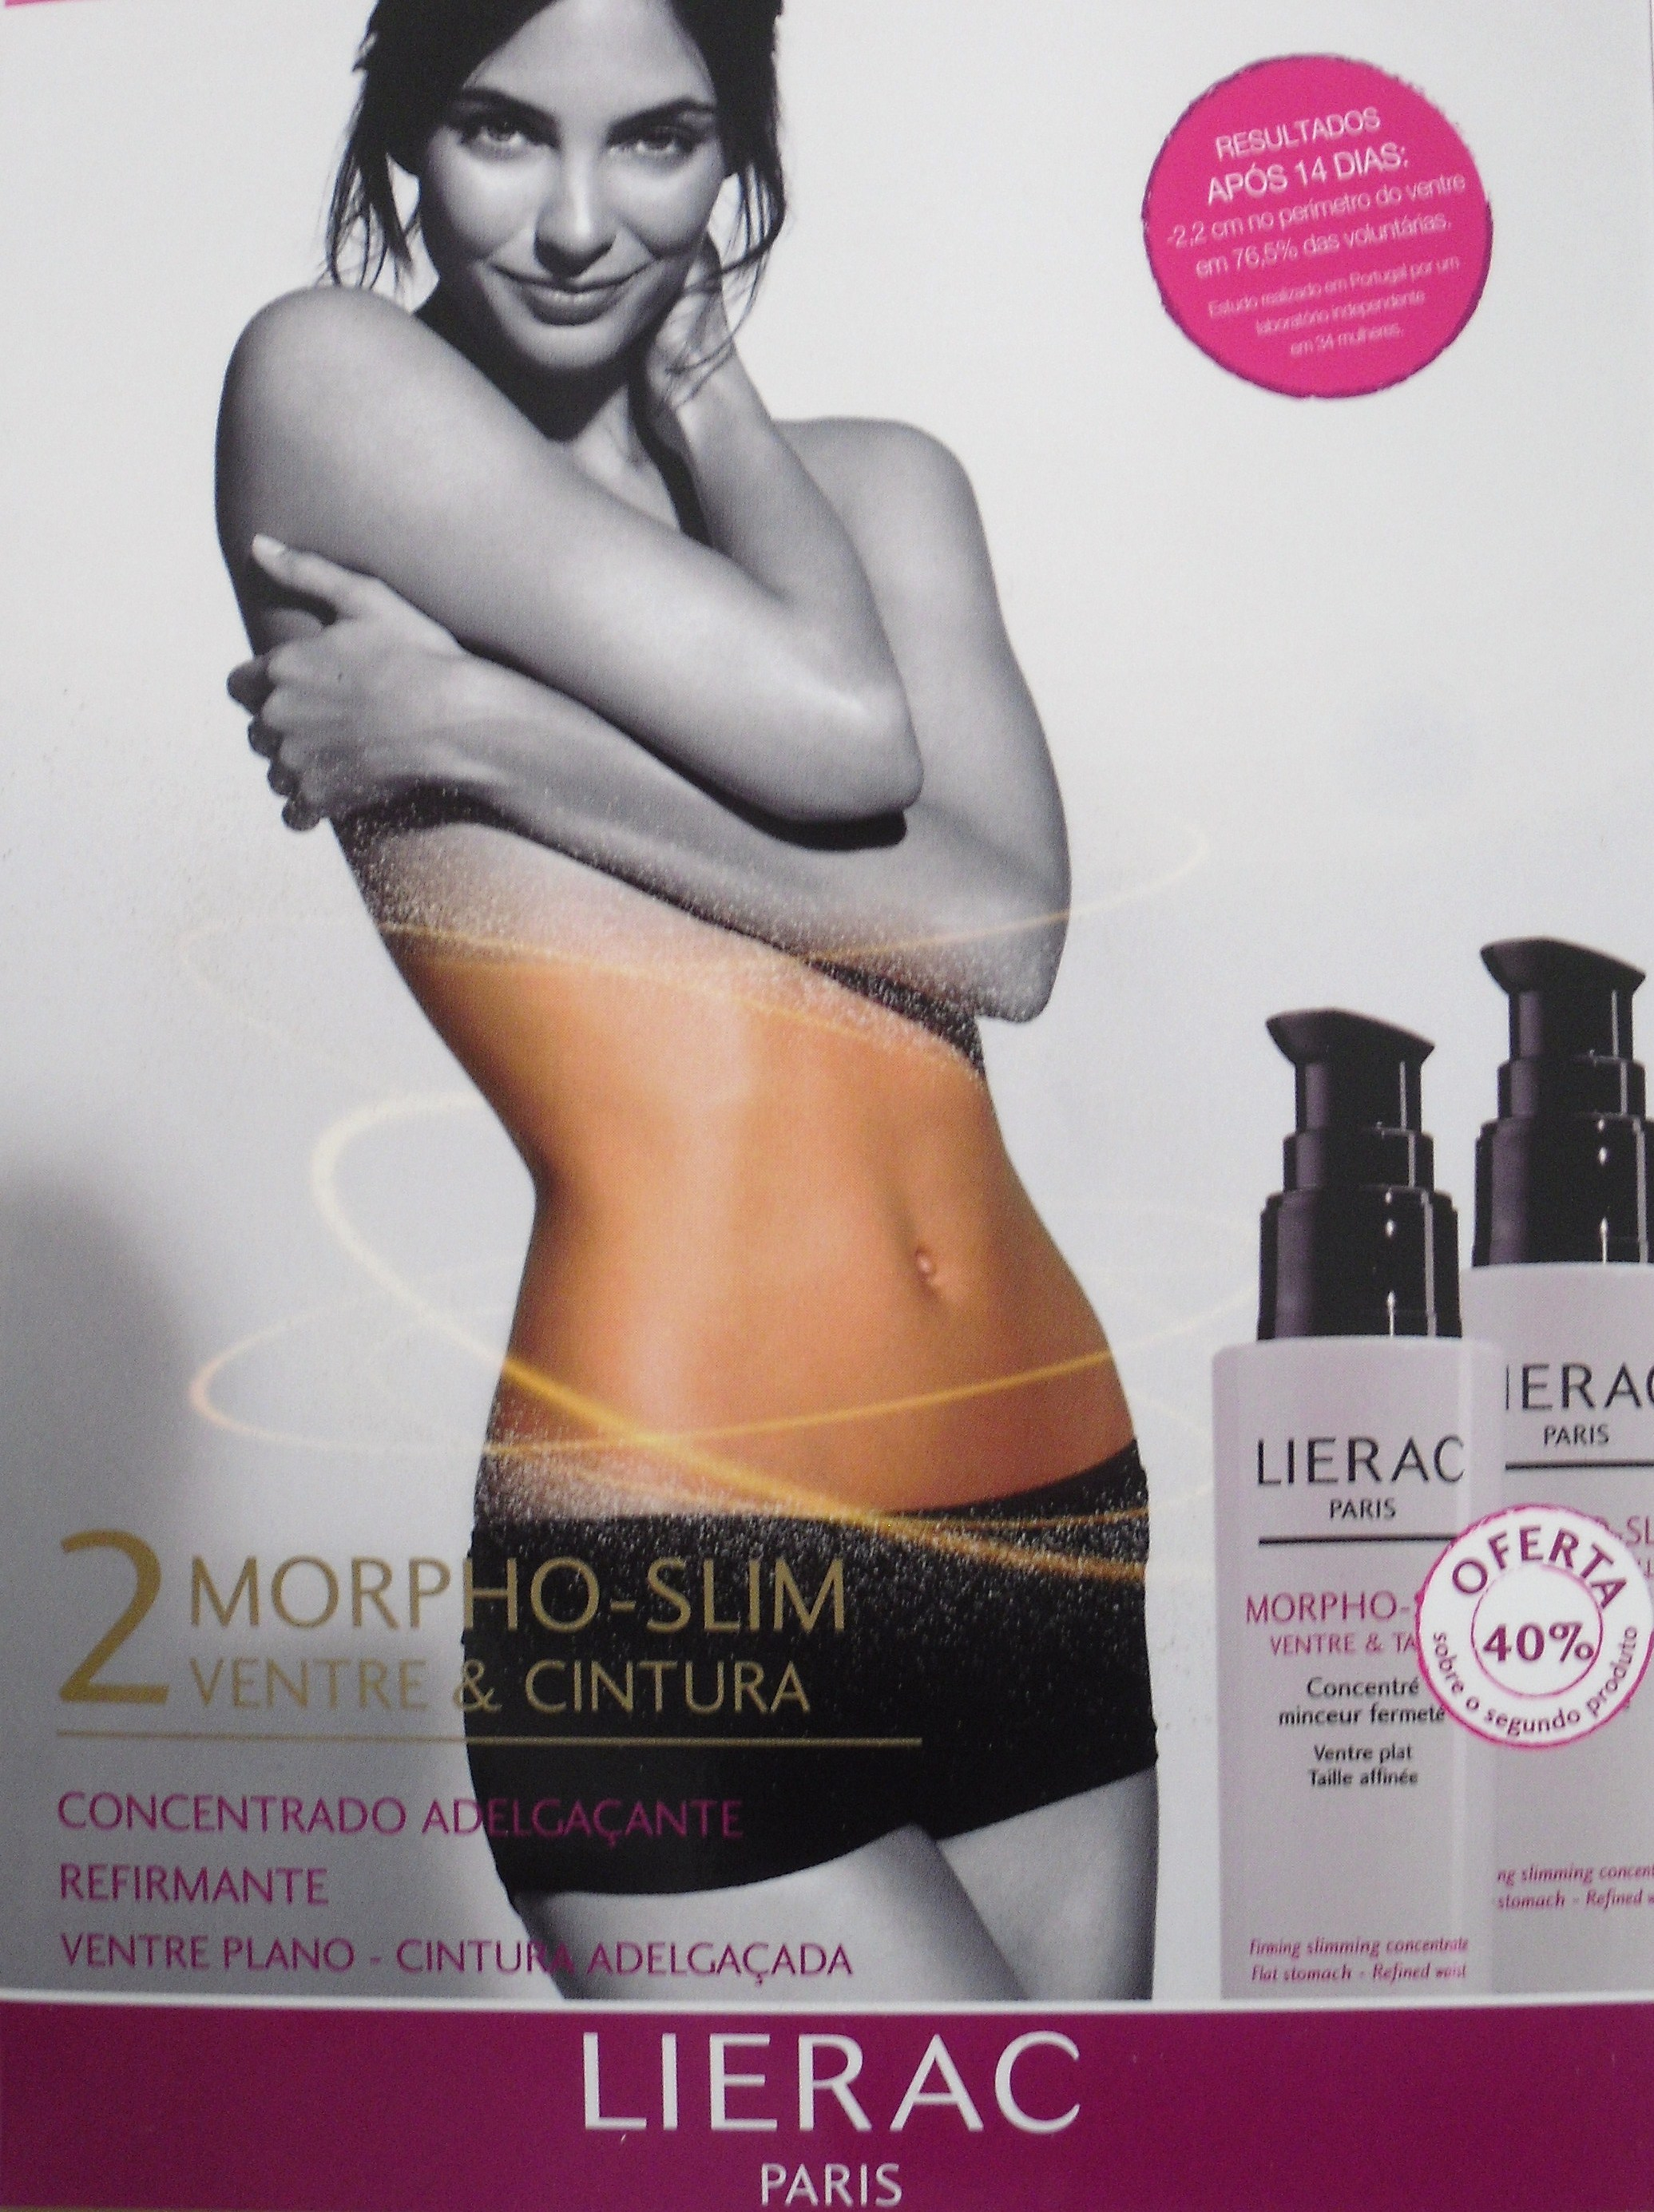 LIERAC CORPO MORPHOSLIM VENTRE 100 ML DUO